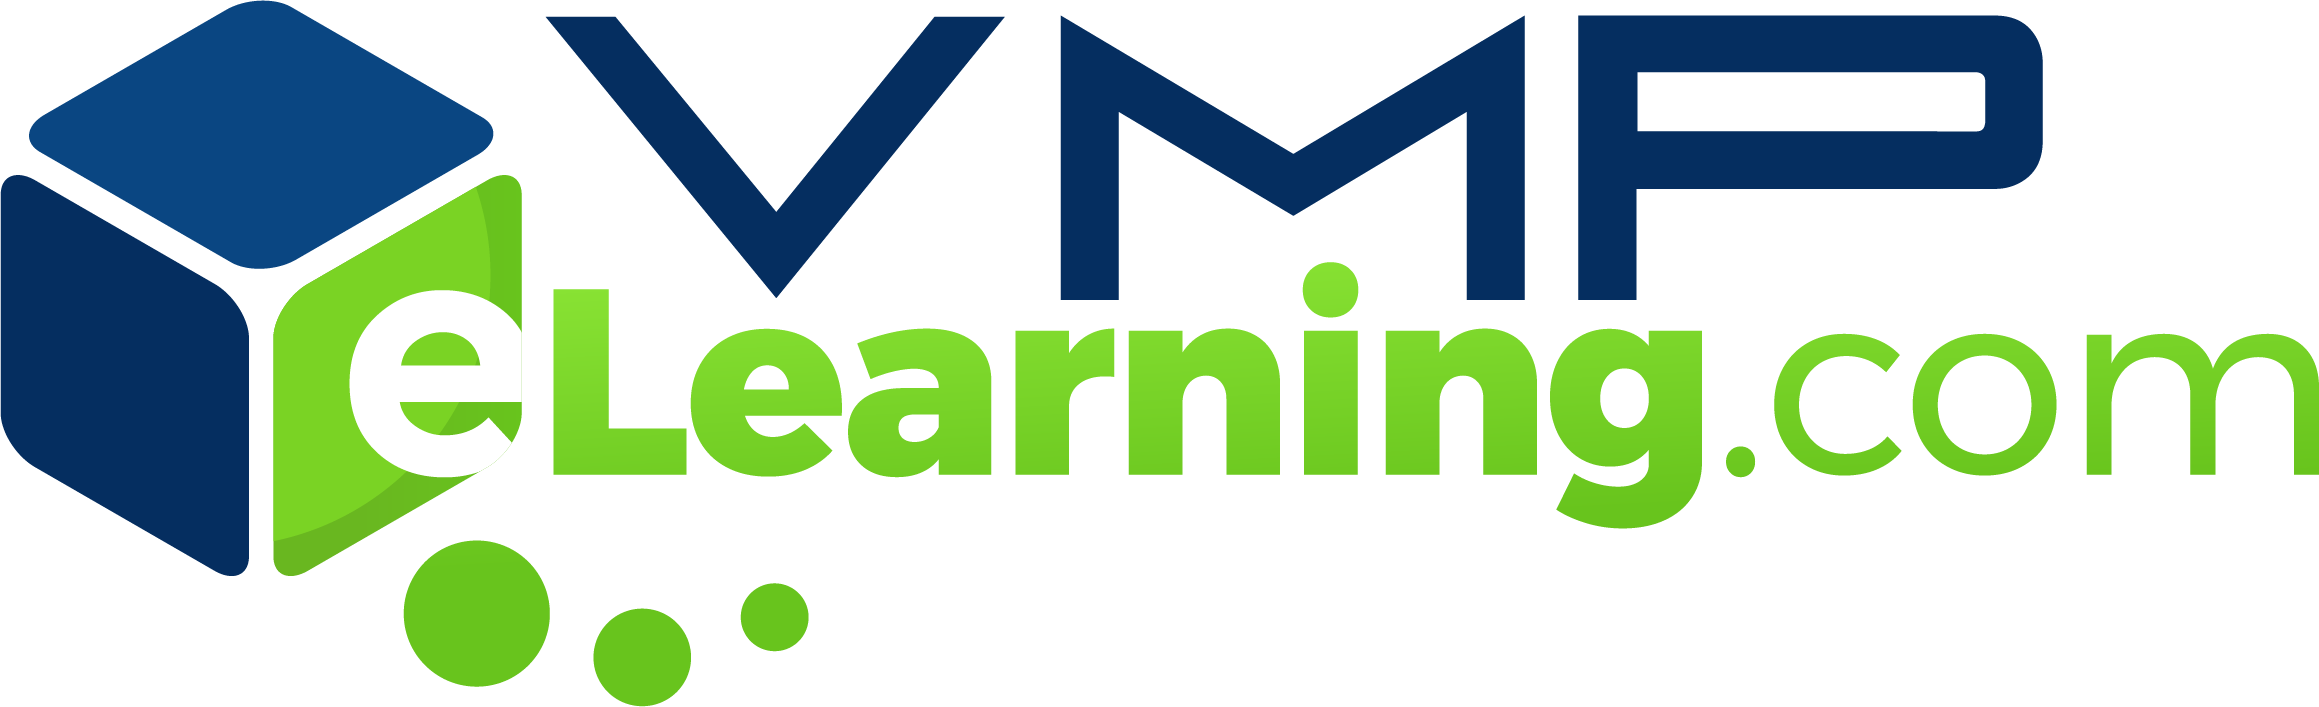 VMP eLearning | Digital Education Agency in Brisbane